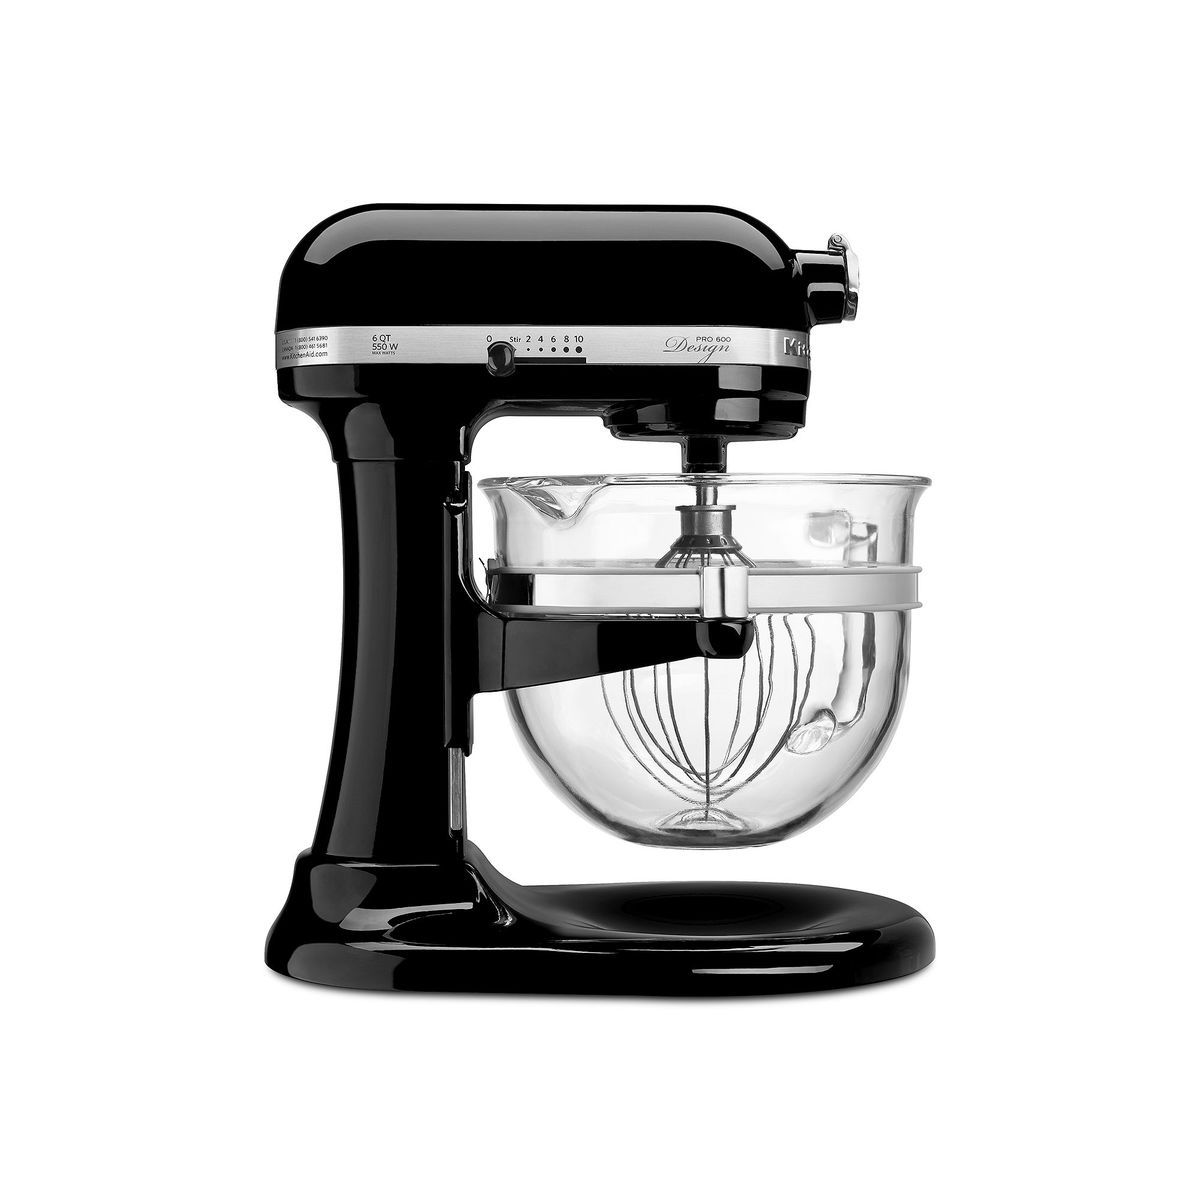 Kitchenaid Kf26m22 Pro 600 Design Series 6 Qt Stand Mixer Black